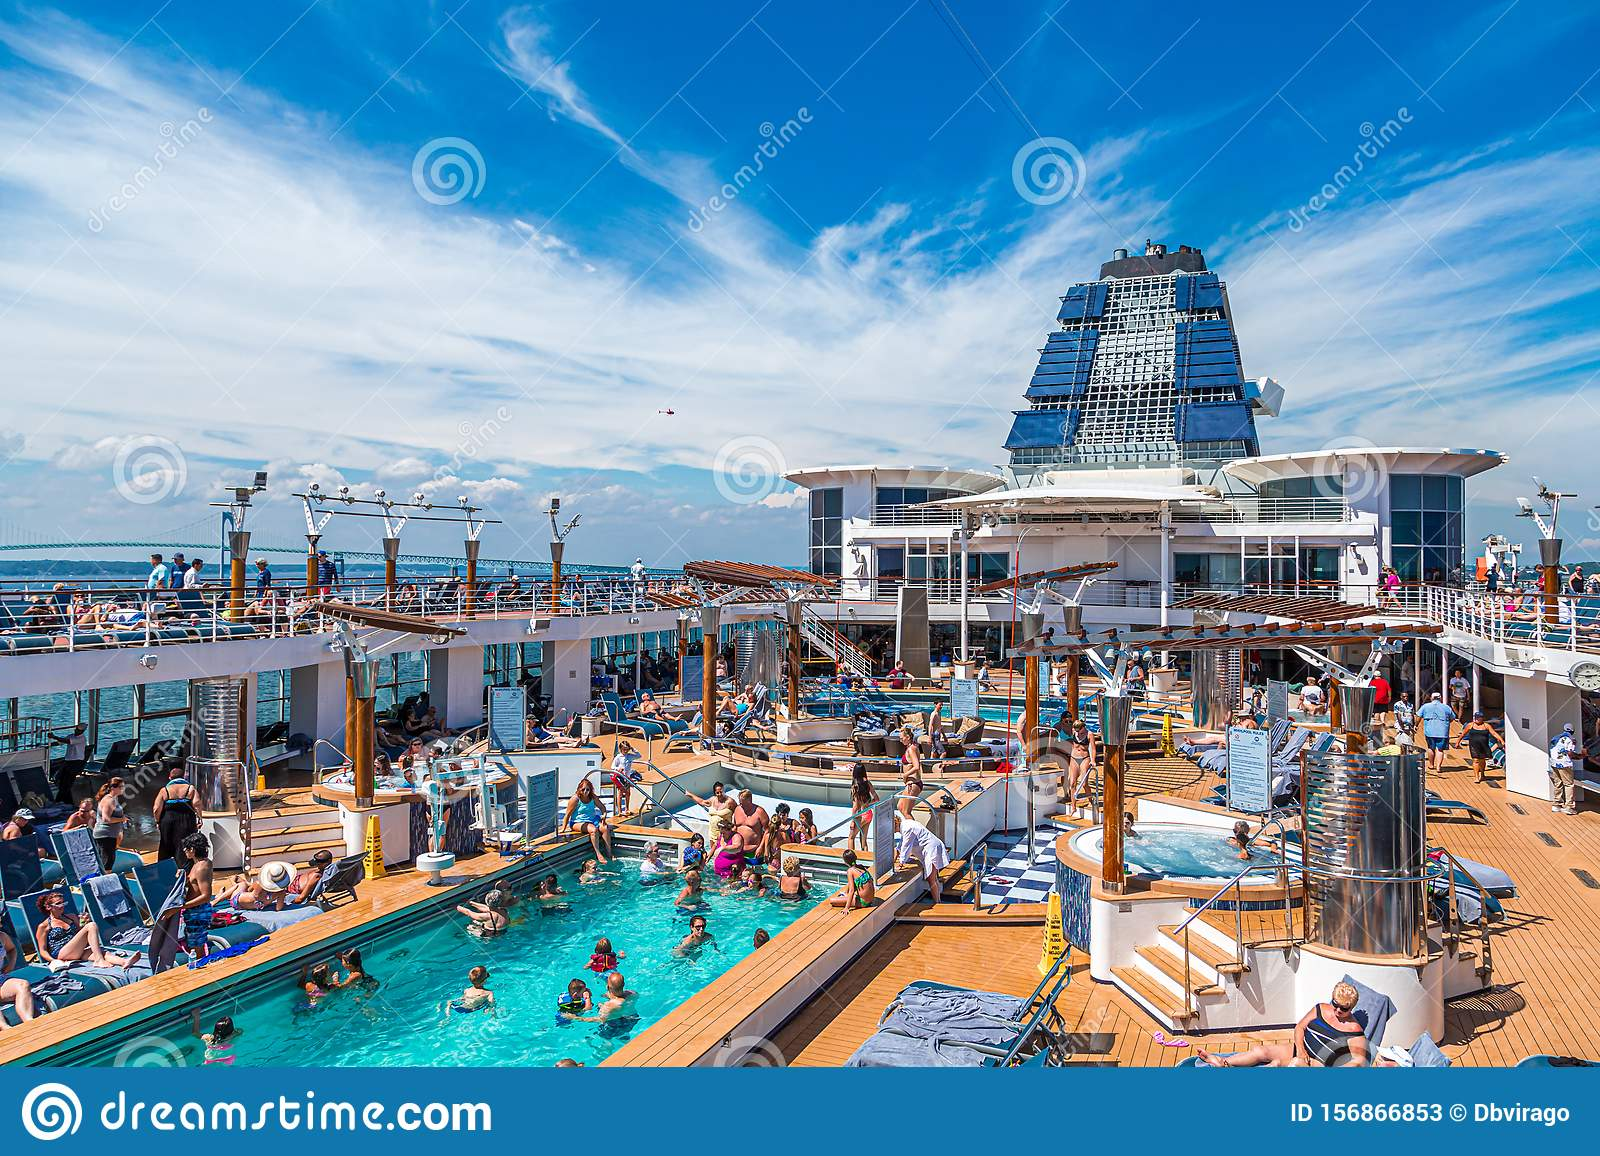 Pool Fun on Cruise Ship